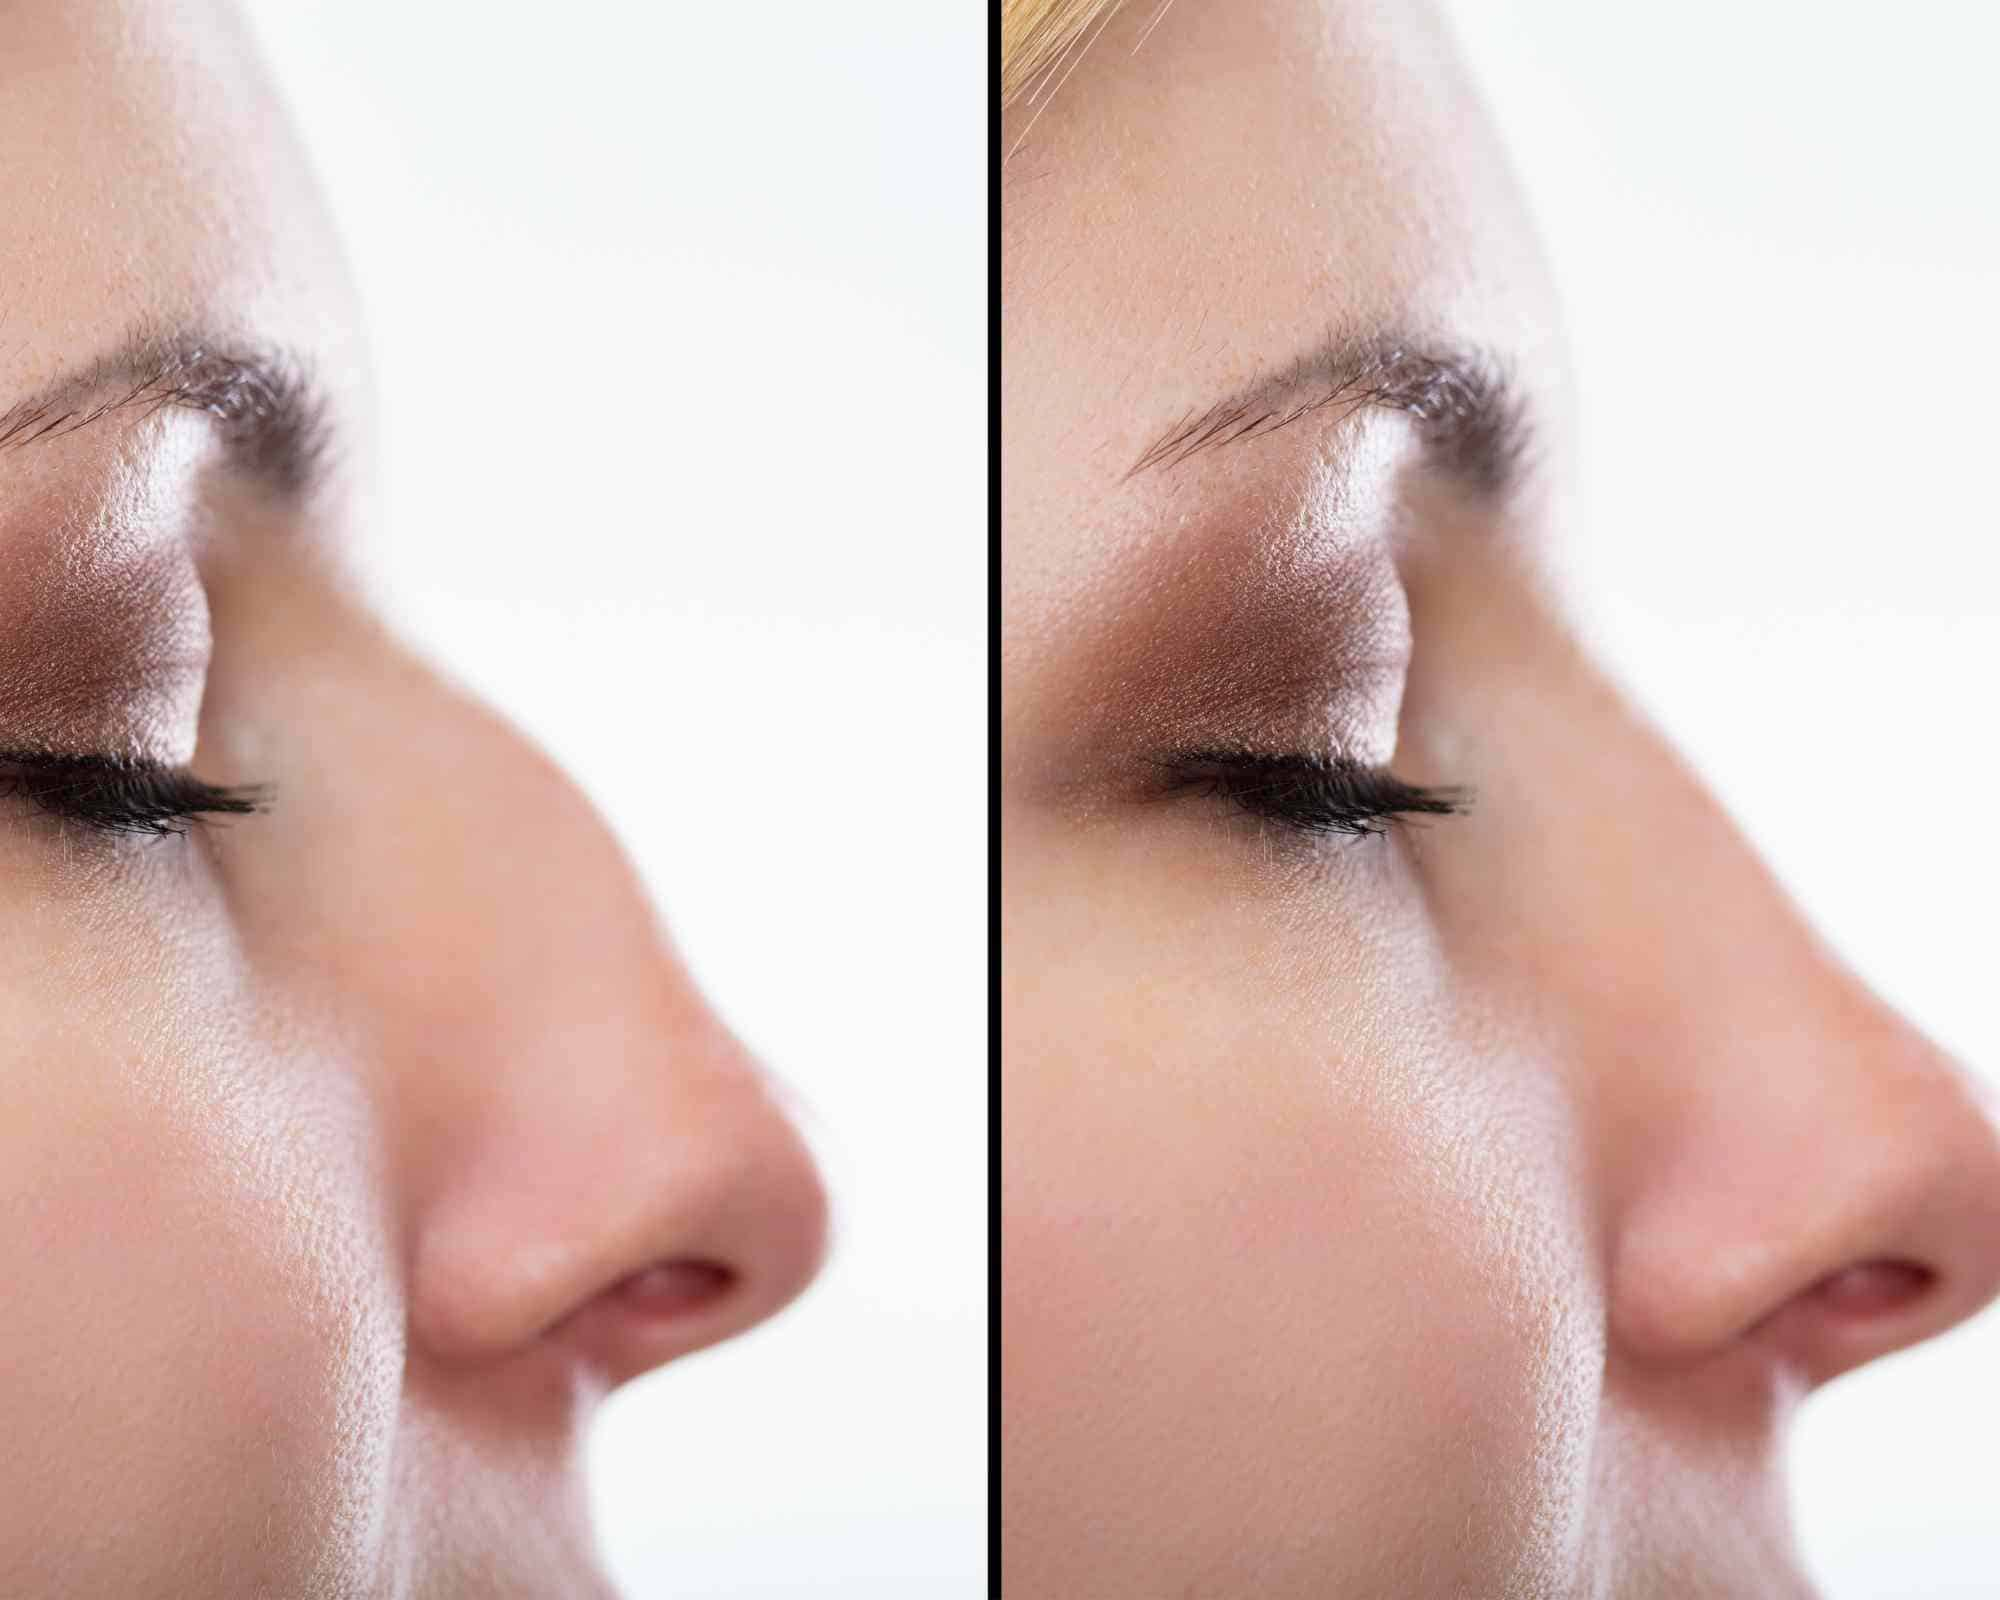 NON SURGCIAL RHINOPLASTY RESULTS